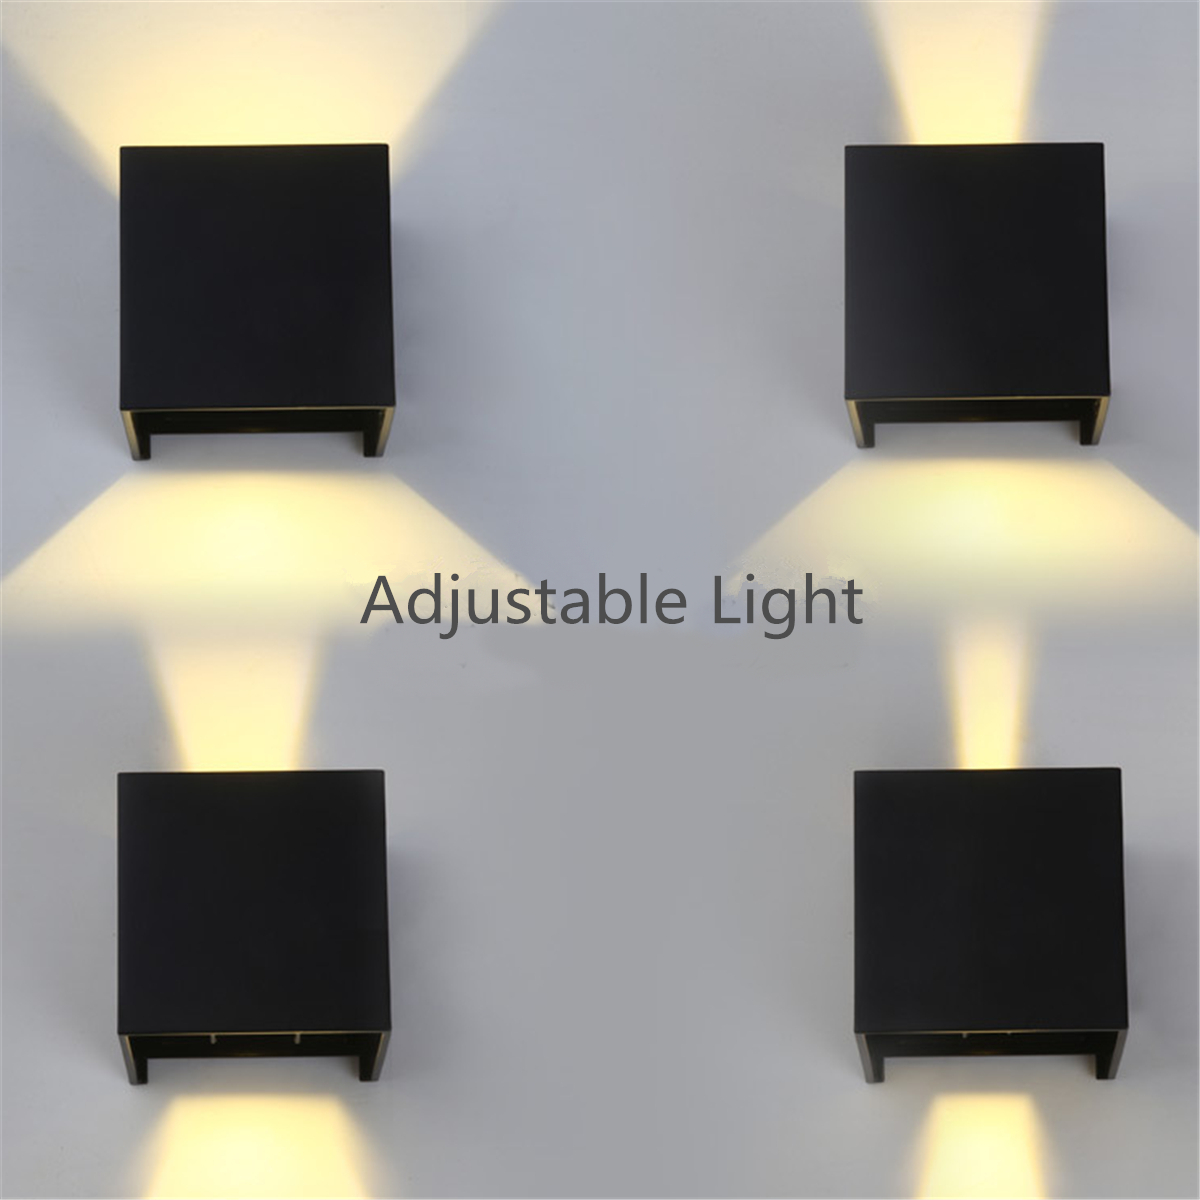 Modern led lighting Chandelier Details About New 7w Modern Led Wall Light Up Down Cube Indoor Outdoor Sconce Lighting Lamp Living Room Ideas New 7w Modern Led Wall Light Up Down Cube Indoor Outdoor Sconce